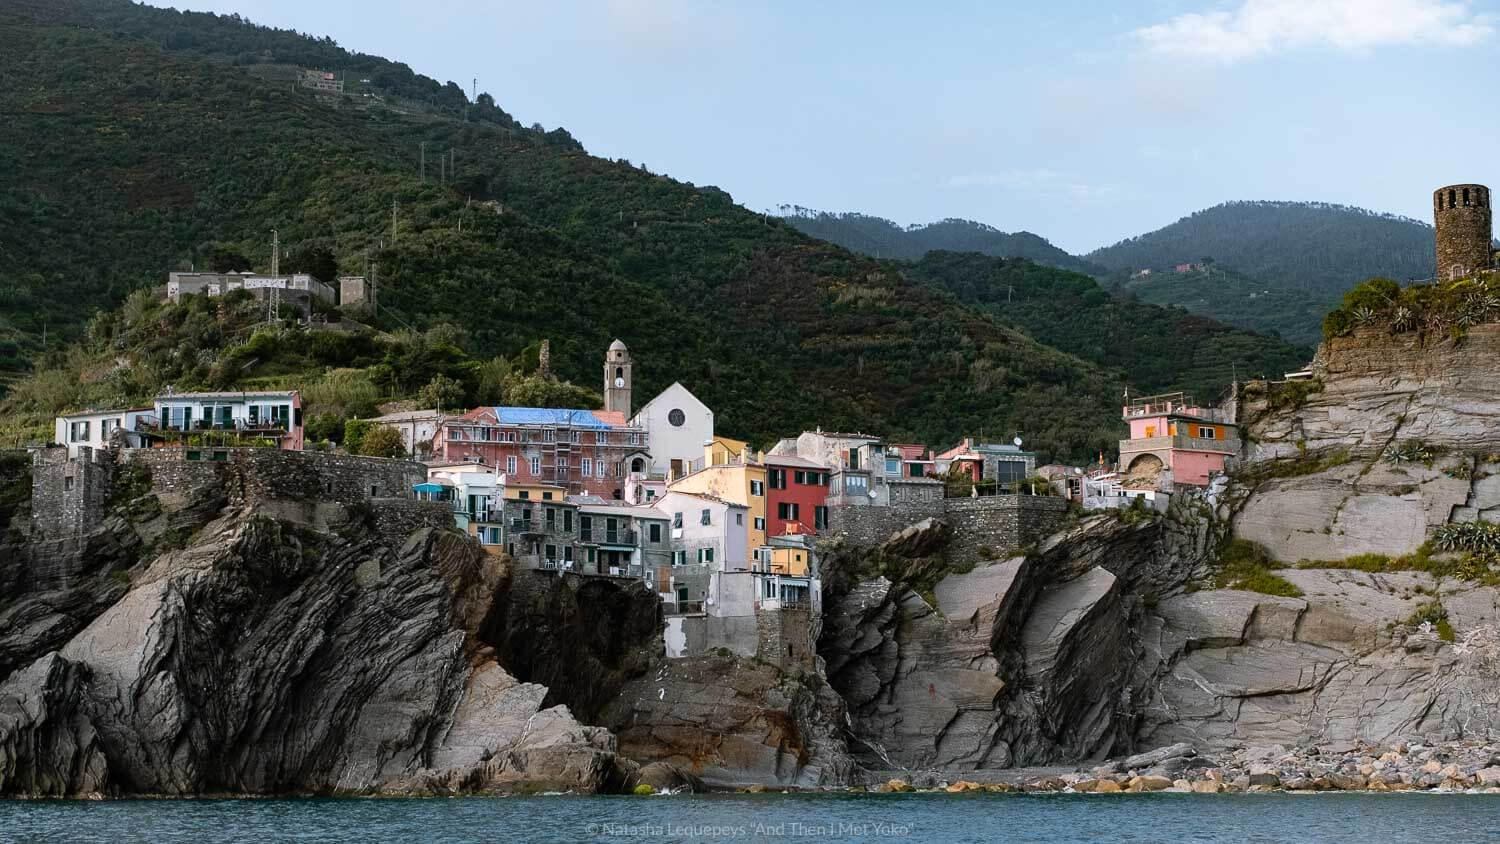 """Vernazza from the water, Cinque Terre. Travel photography and guide by © Natasha Lequepeys for """"And Then I Met Yoko"""". #cinqueterre #italy #travelphotography"""